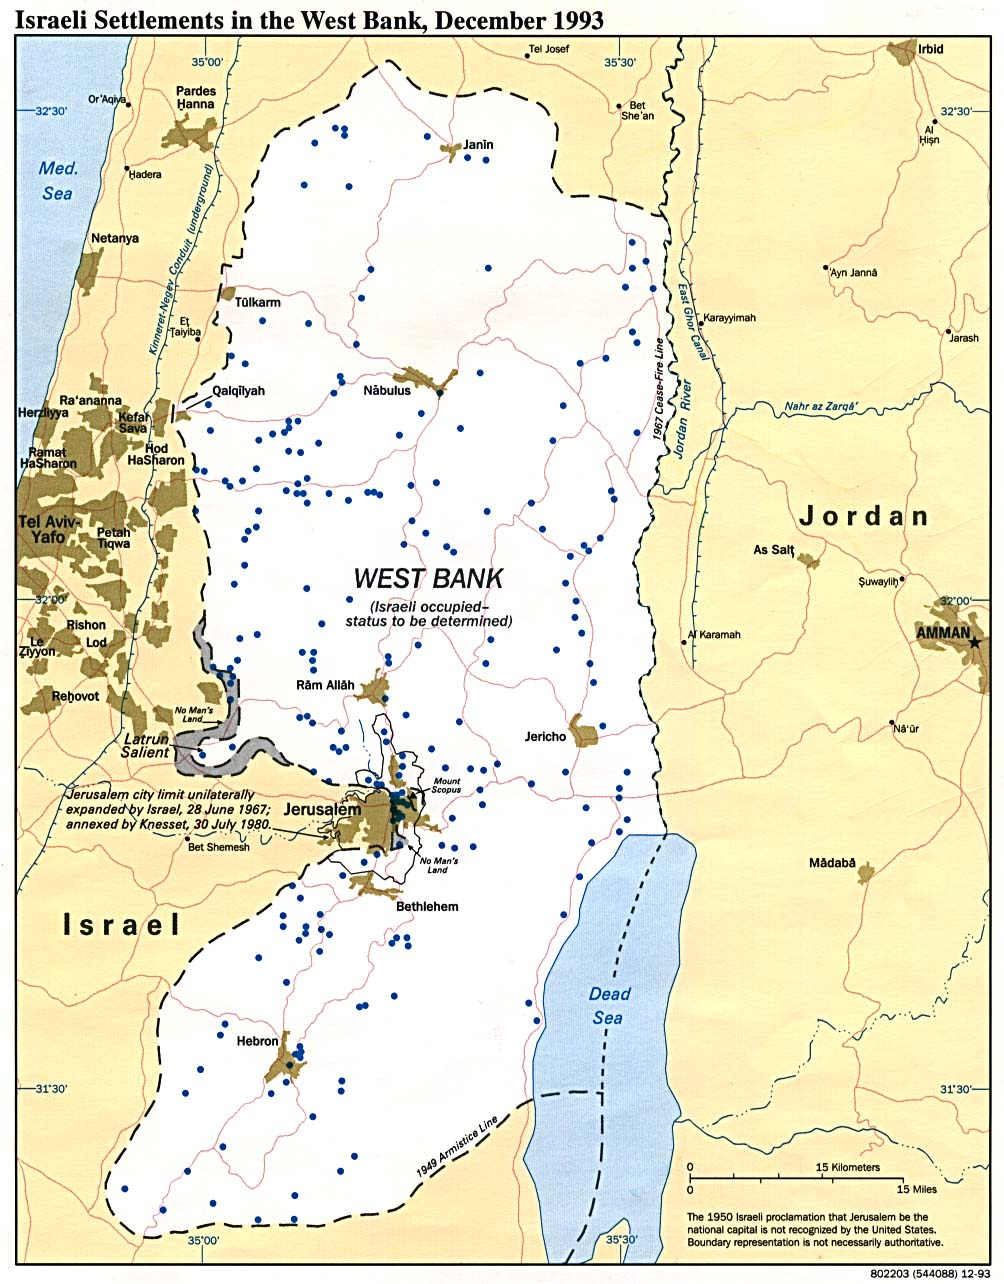 Map Of West Bank and Gaza Strip. Israeli Settlements in the West Bank 1993 (216K)